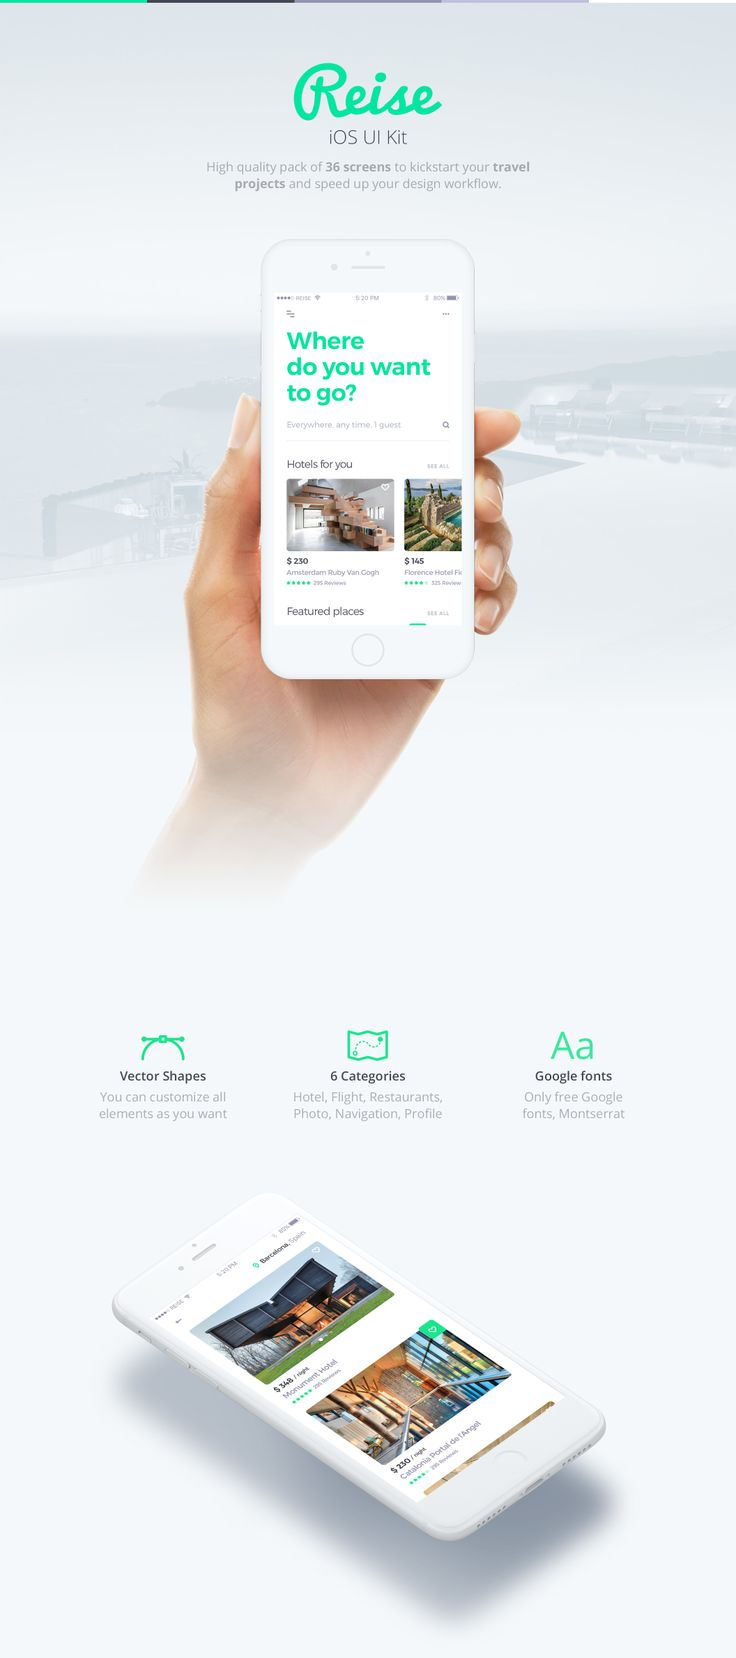 Reise iOS UI KIt is high quality pack of 36 screens to kickstart your travel projects and speed up your design workflow. Reise includes 36 high quality iOS screen templates designed in Sketch, 6 categories (Hotel Booking, Flight Booking, Restaurants, My Photos, Navigation, Profile). This modern design template is easy to customize, making it even easier for you to design your next app, projects and speed up your design workflow.